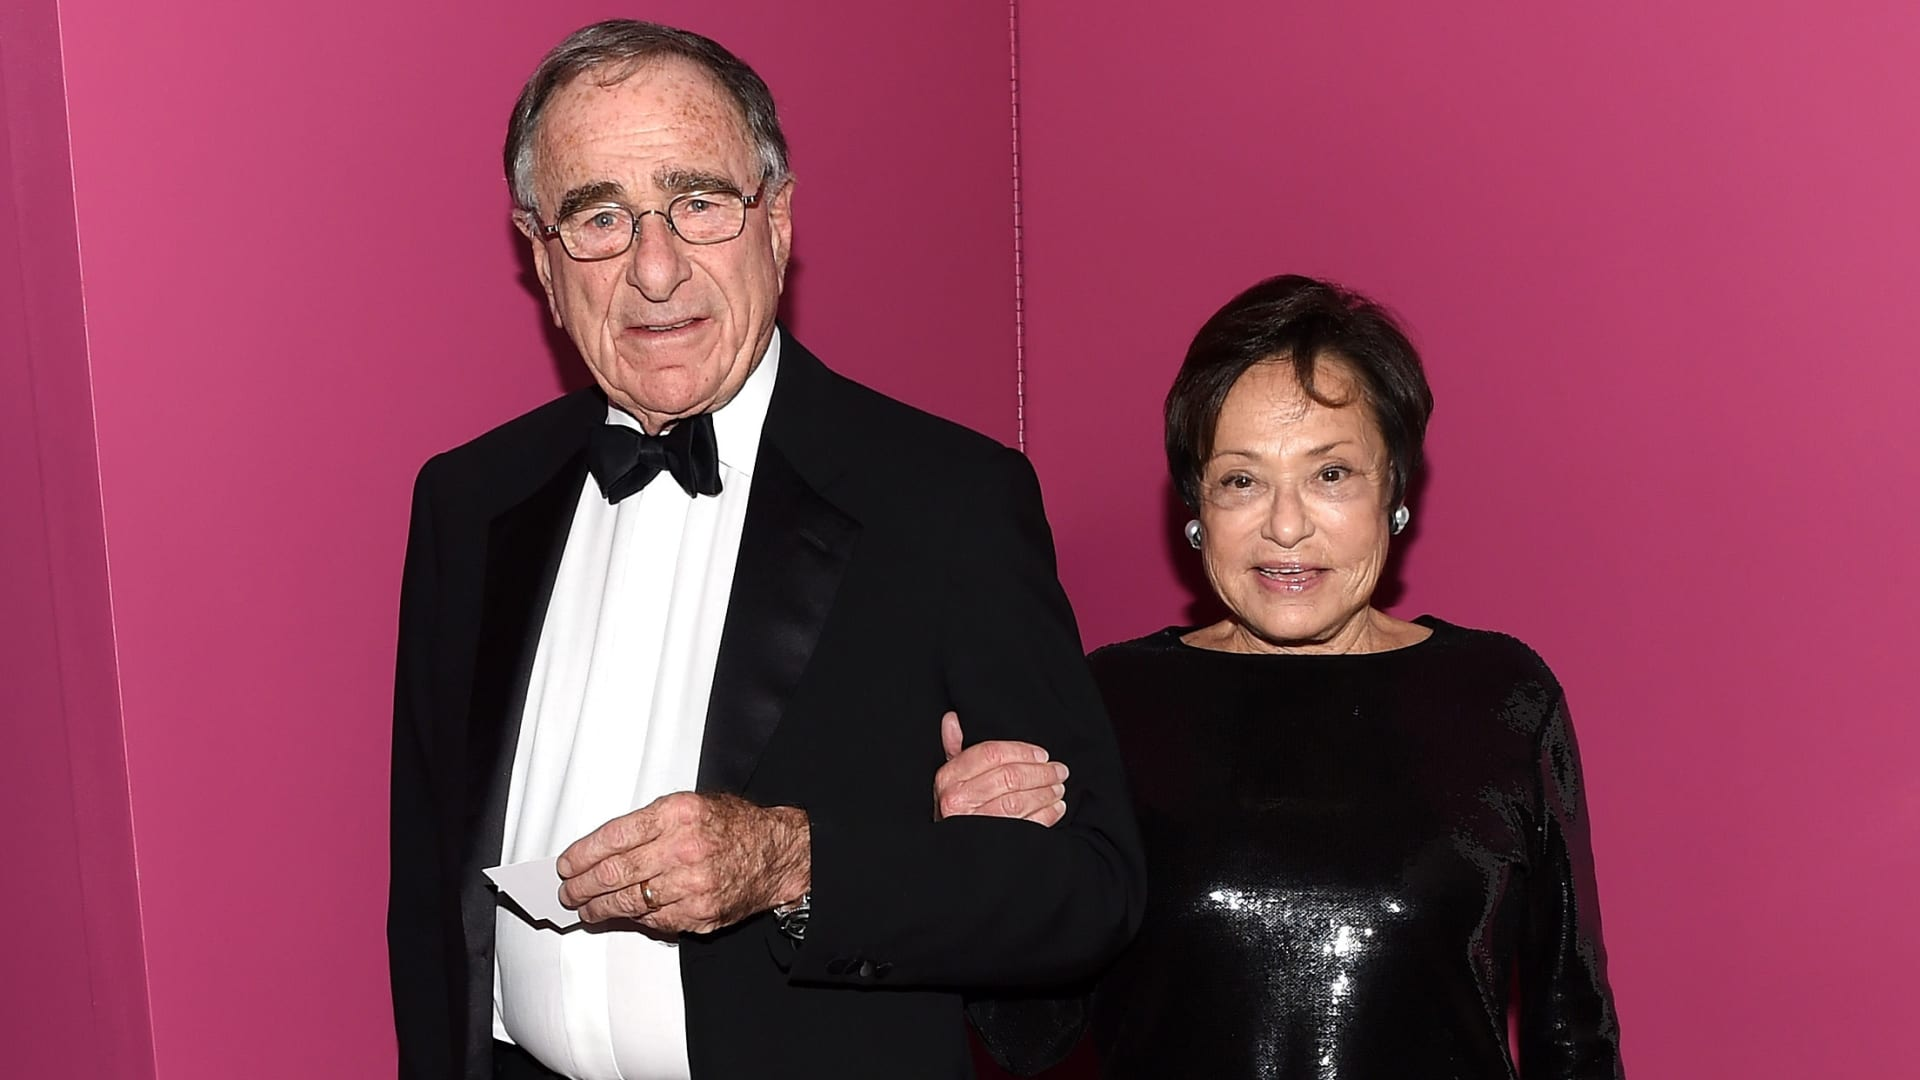 Harry Macklowe and Linda Macklowe attend the 2015 Guggenheim International Gala Dinner made possible by Dior at Solomon R. Guggenheim Museum on November 5, 2015 in New York City.